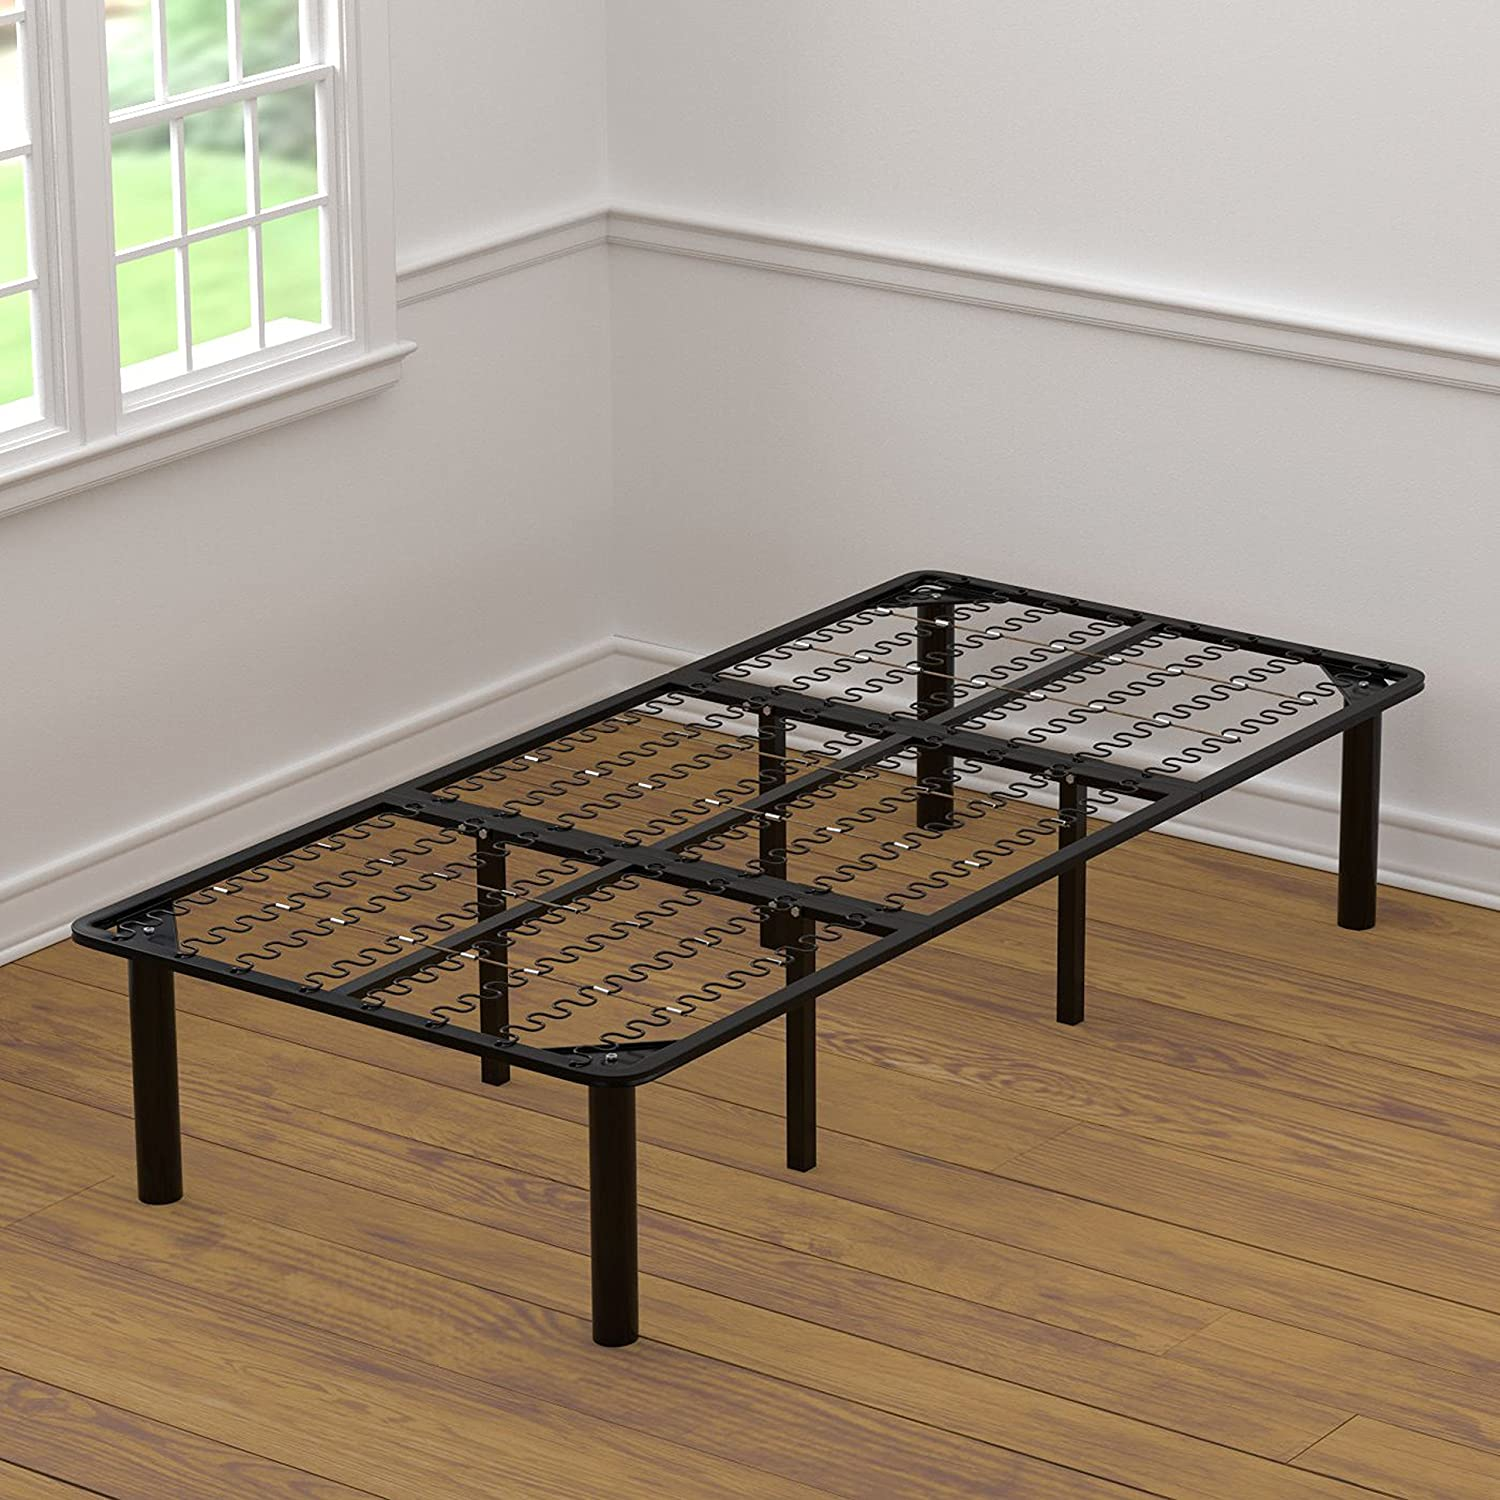 Handy Living Bed Frame Extra Long Twin